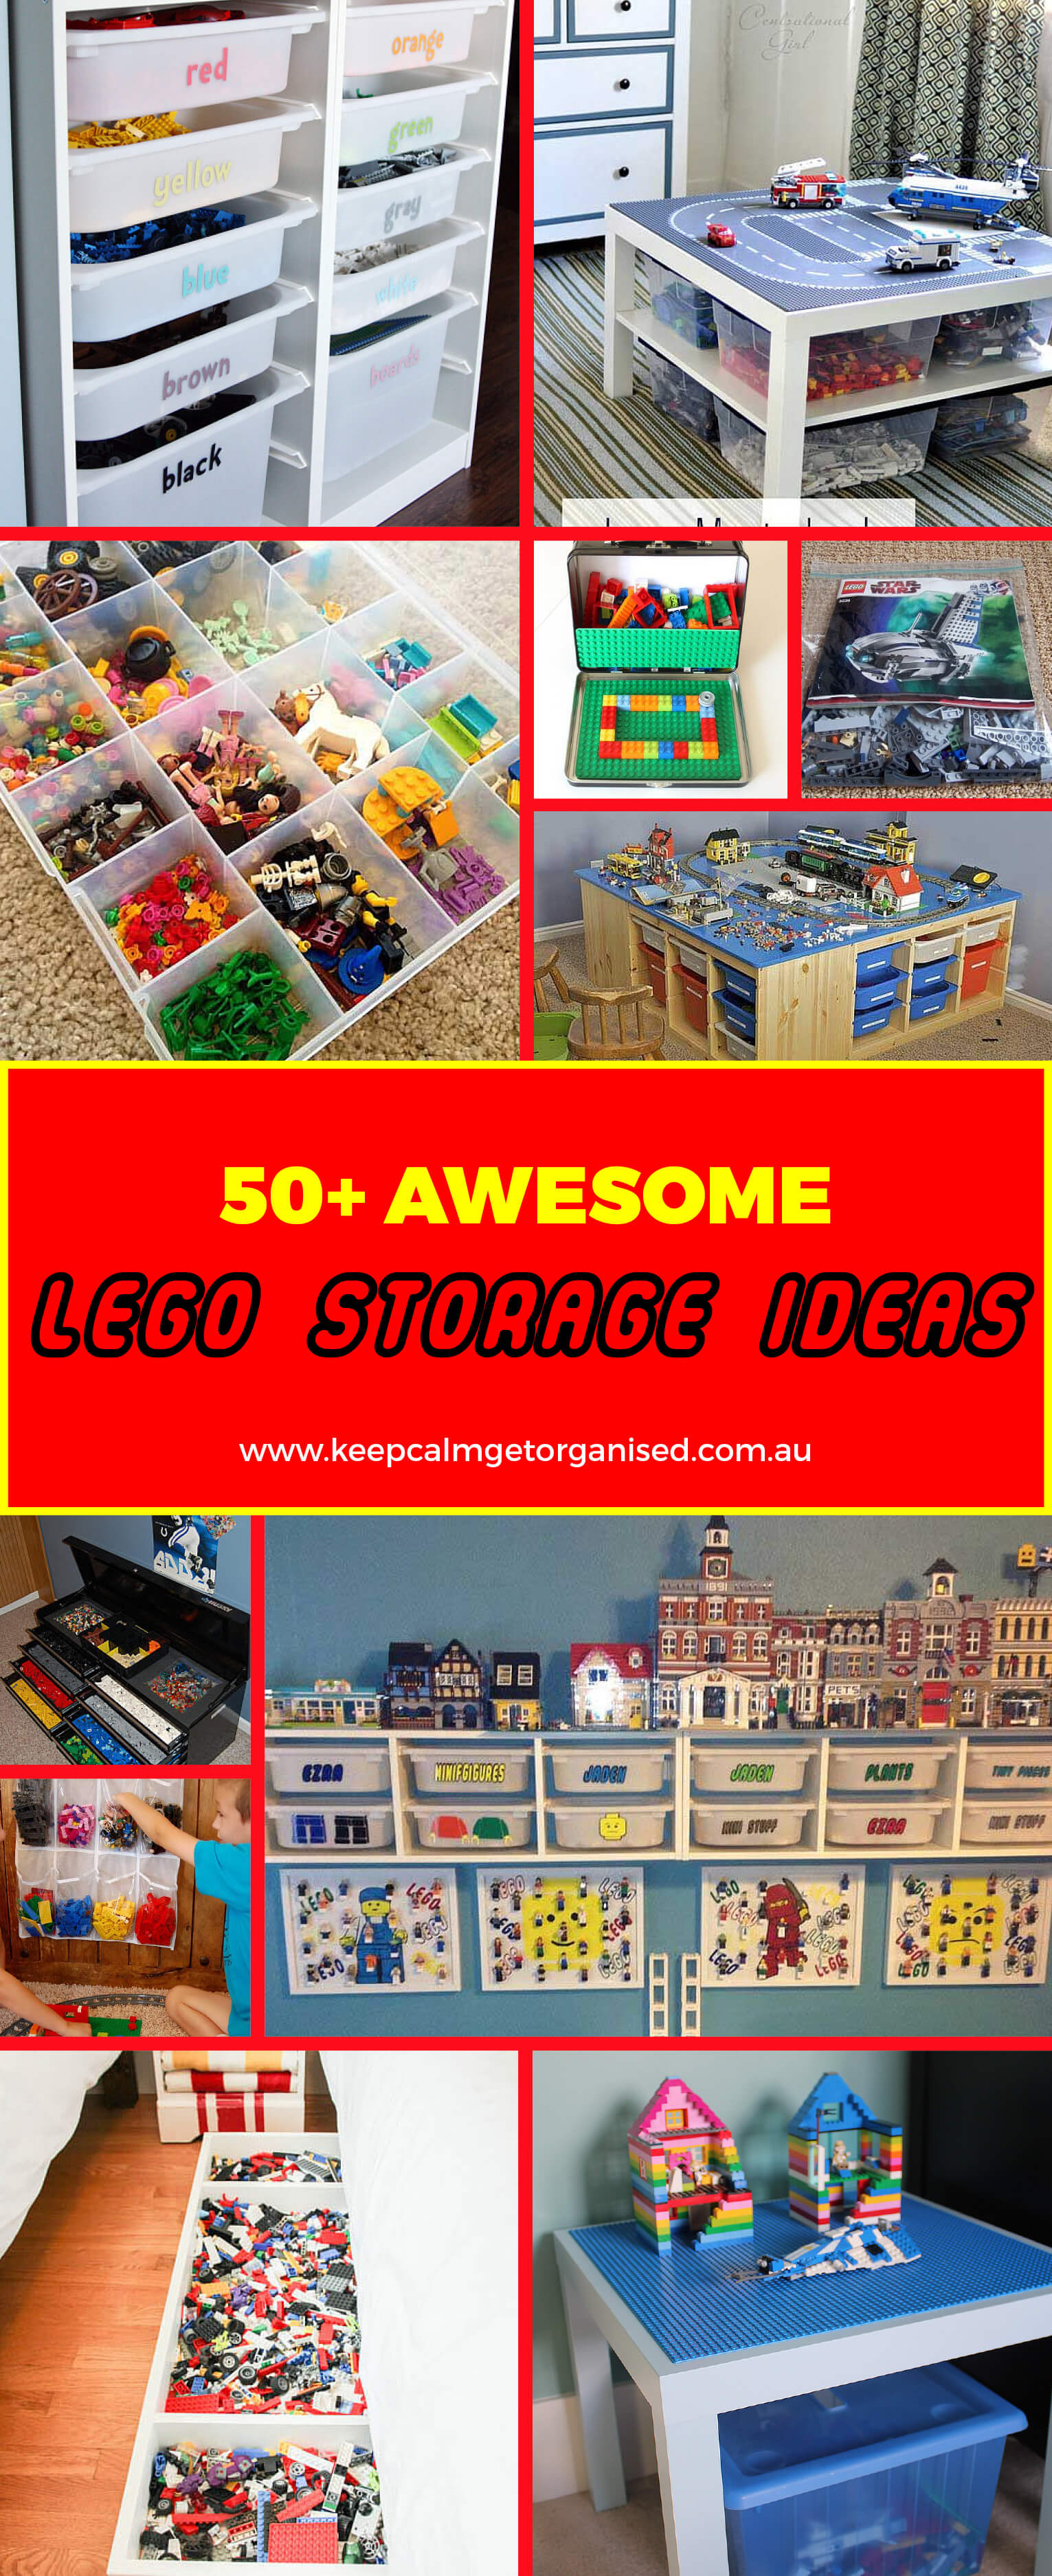 50+ Awesome Lego storage ideas for clever Lego organisation & Lego Storage Ideas: The Ultimate Lego Organisation Guide